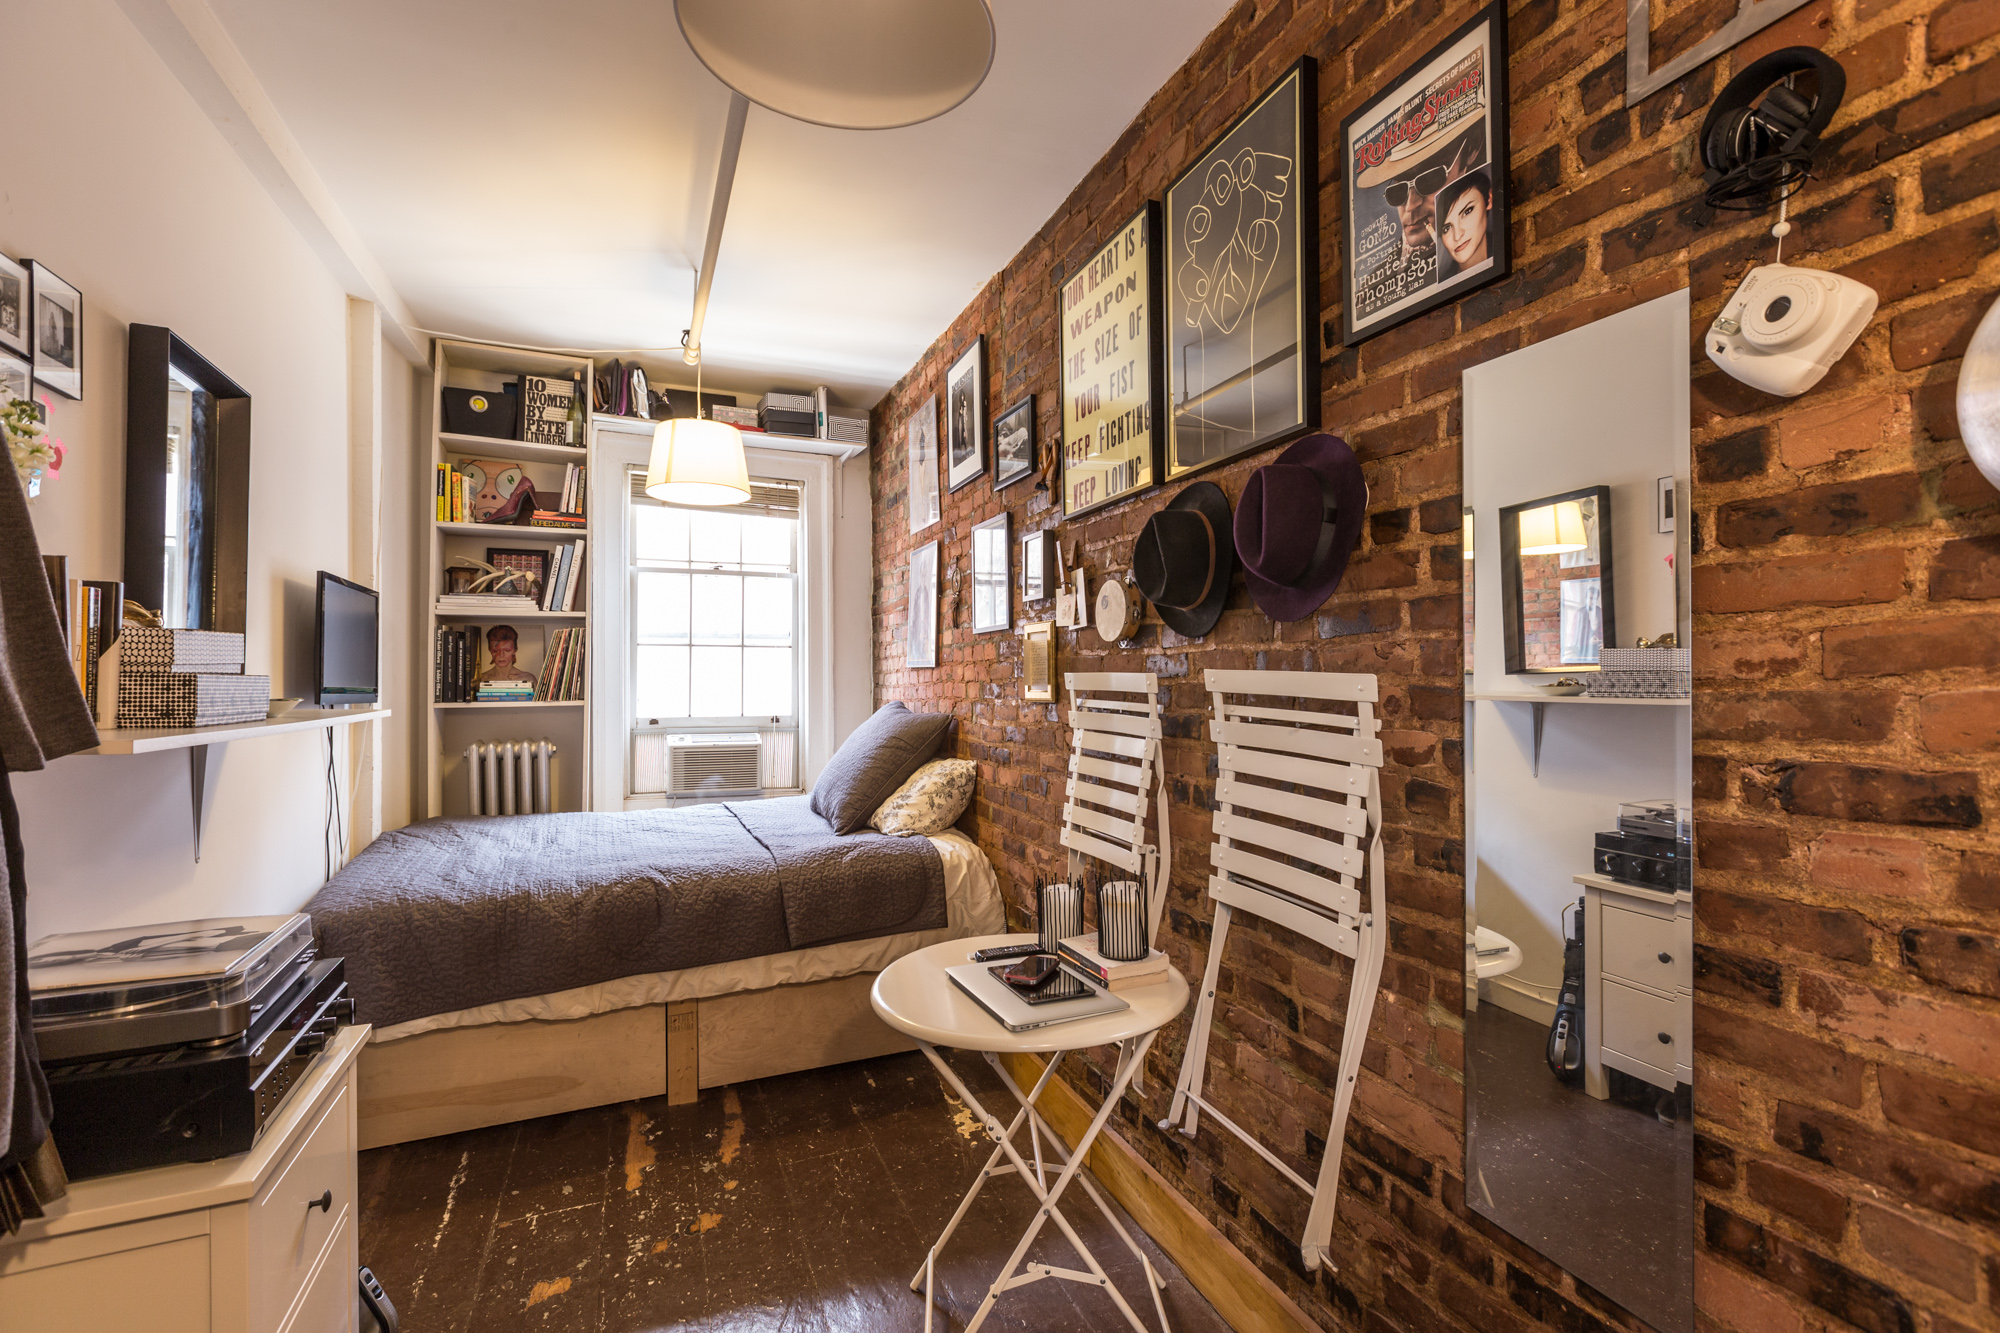 How one new yorker lives comfortably in 90 square feet for 100 square feet room size